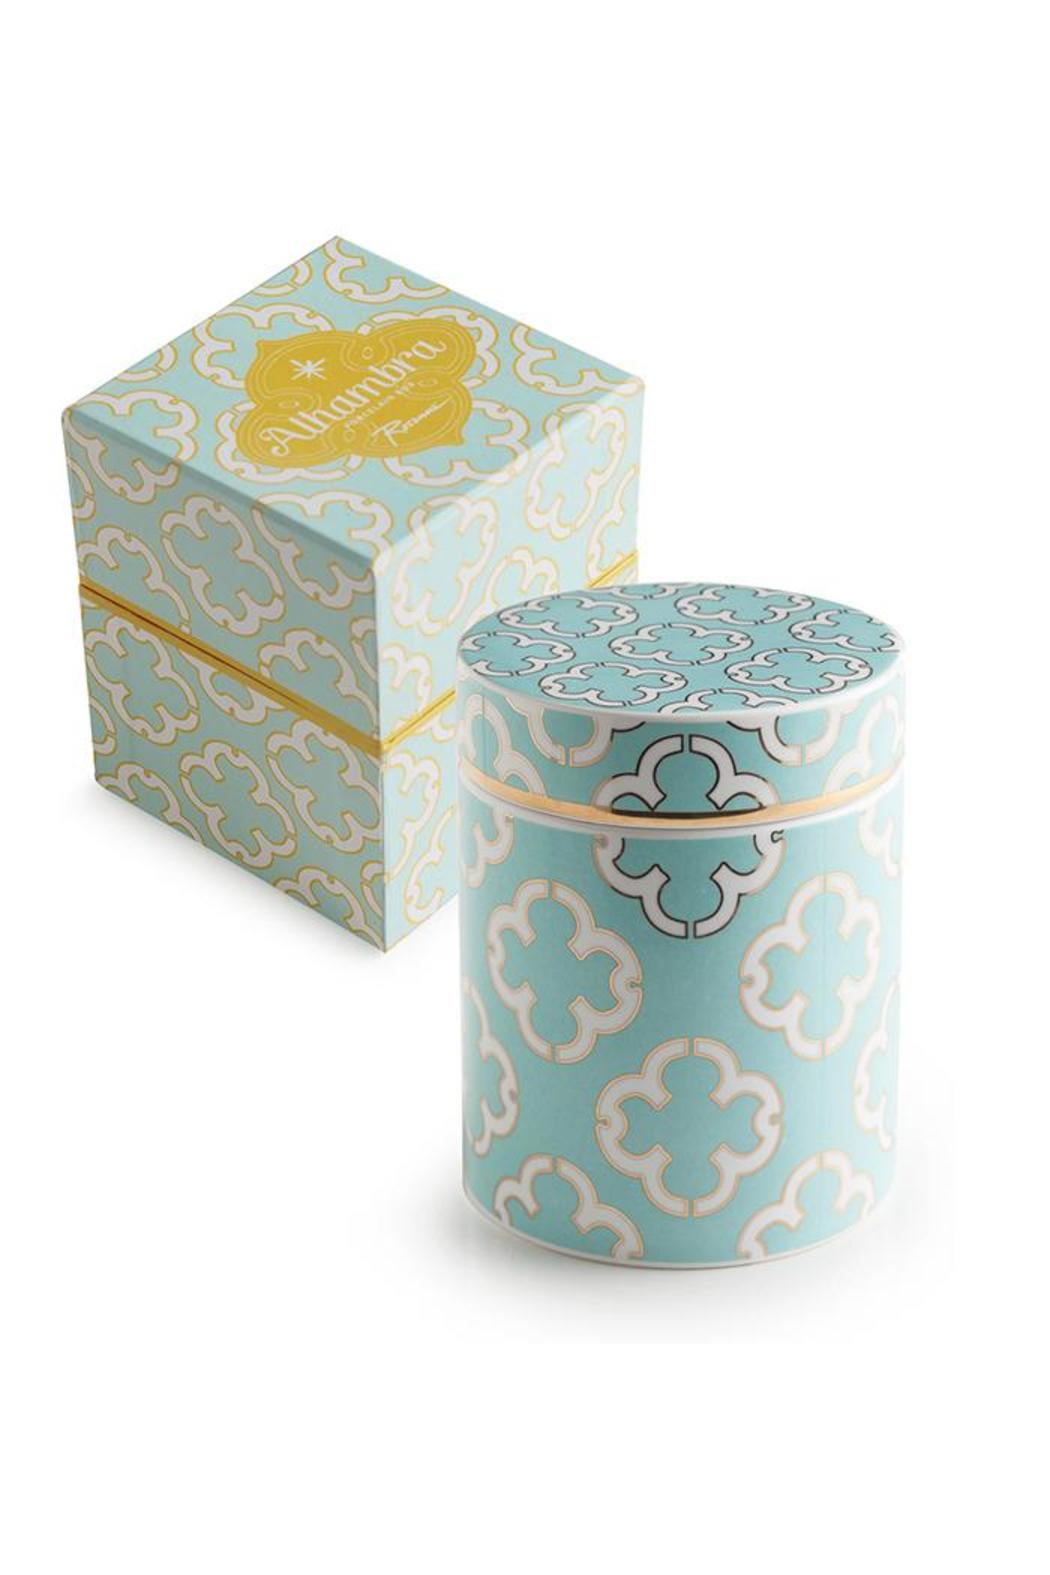 Rossanna alhambra small vessel from florida by loverich for Alhambra decoration